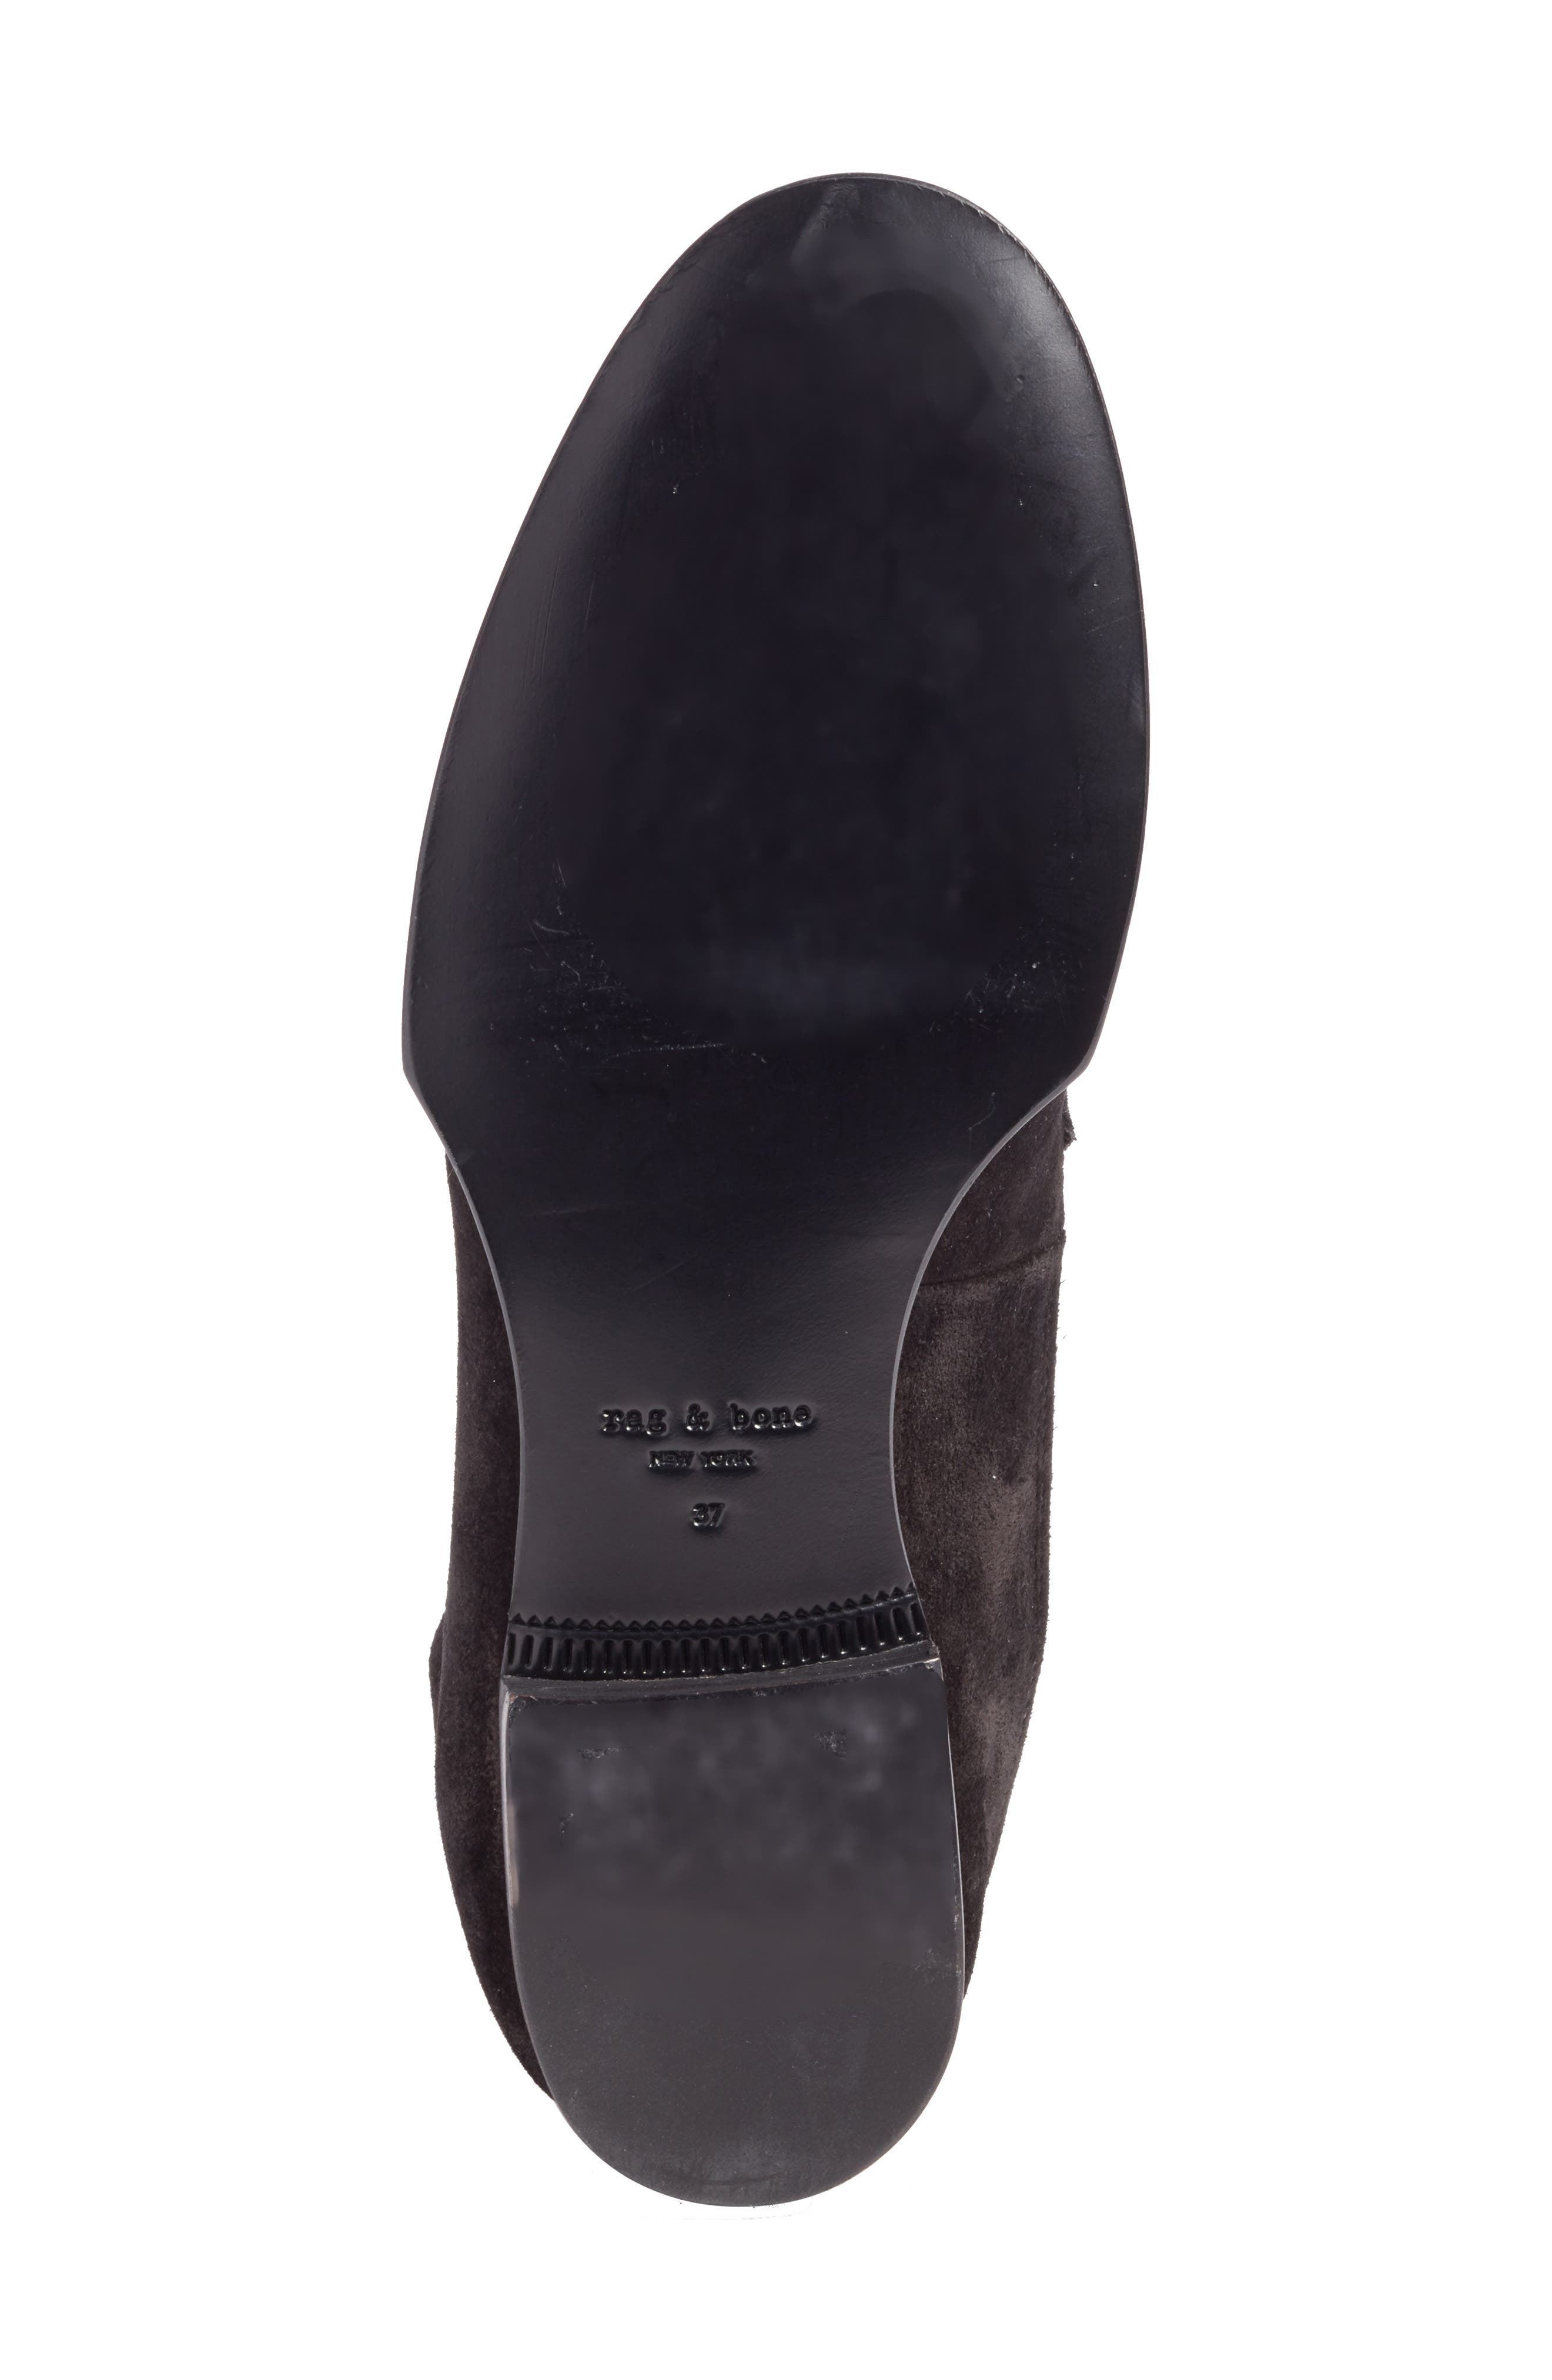 Alix Convertible Loafer,                             Alternate thumbnail 7, color,                             008